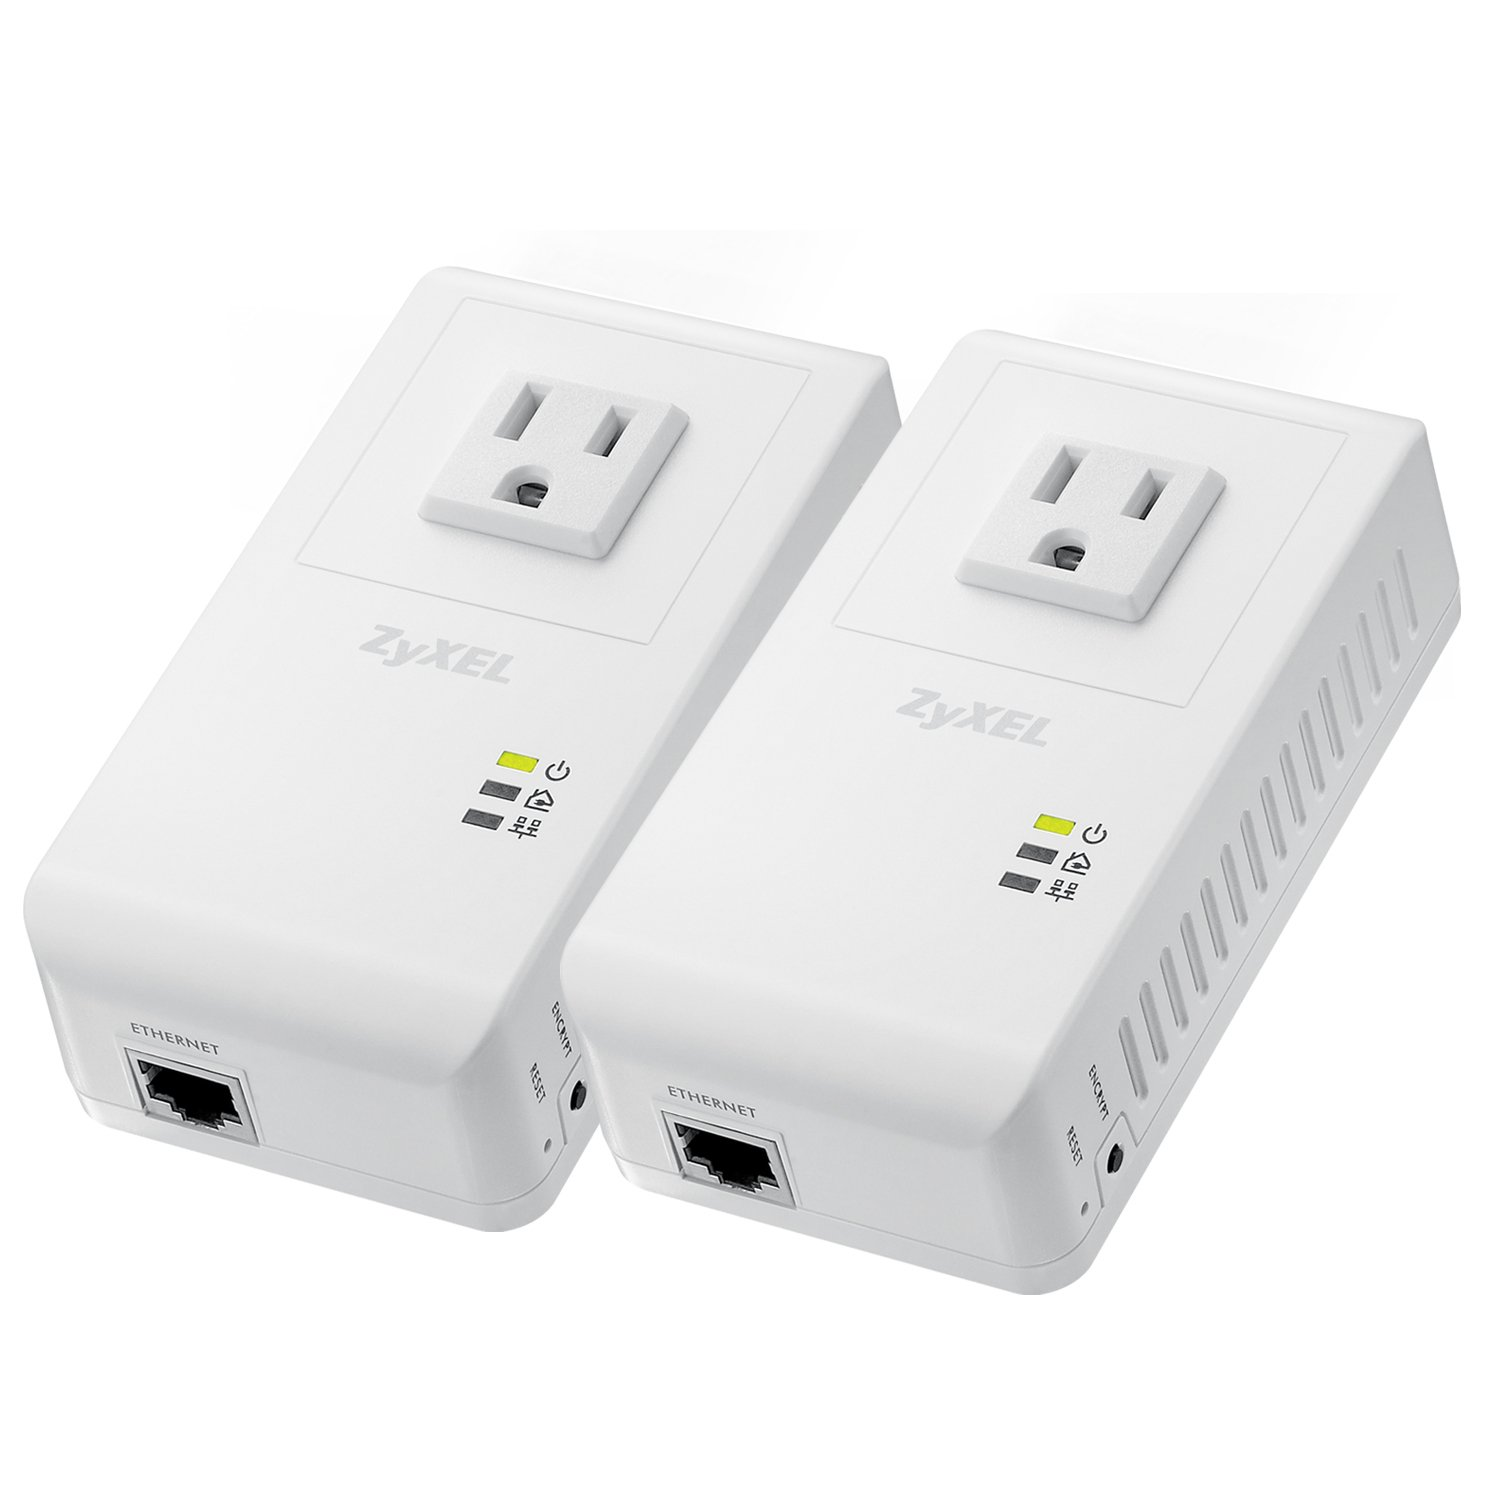 Zyxel Powerline Av 500 Mbps Wall Plug Adapter Starter Home Wiring Internet Kit With 2 Units Pla4215kit Computers Accessories